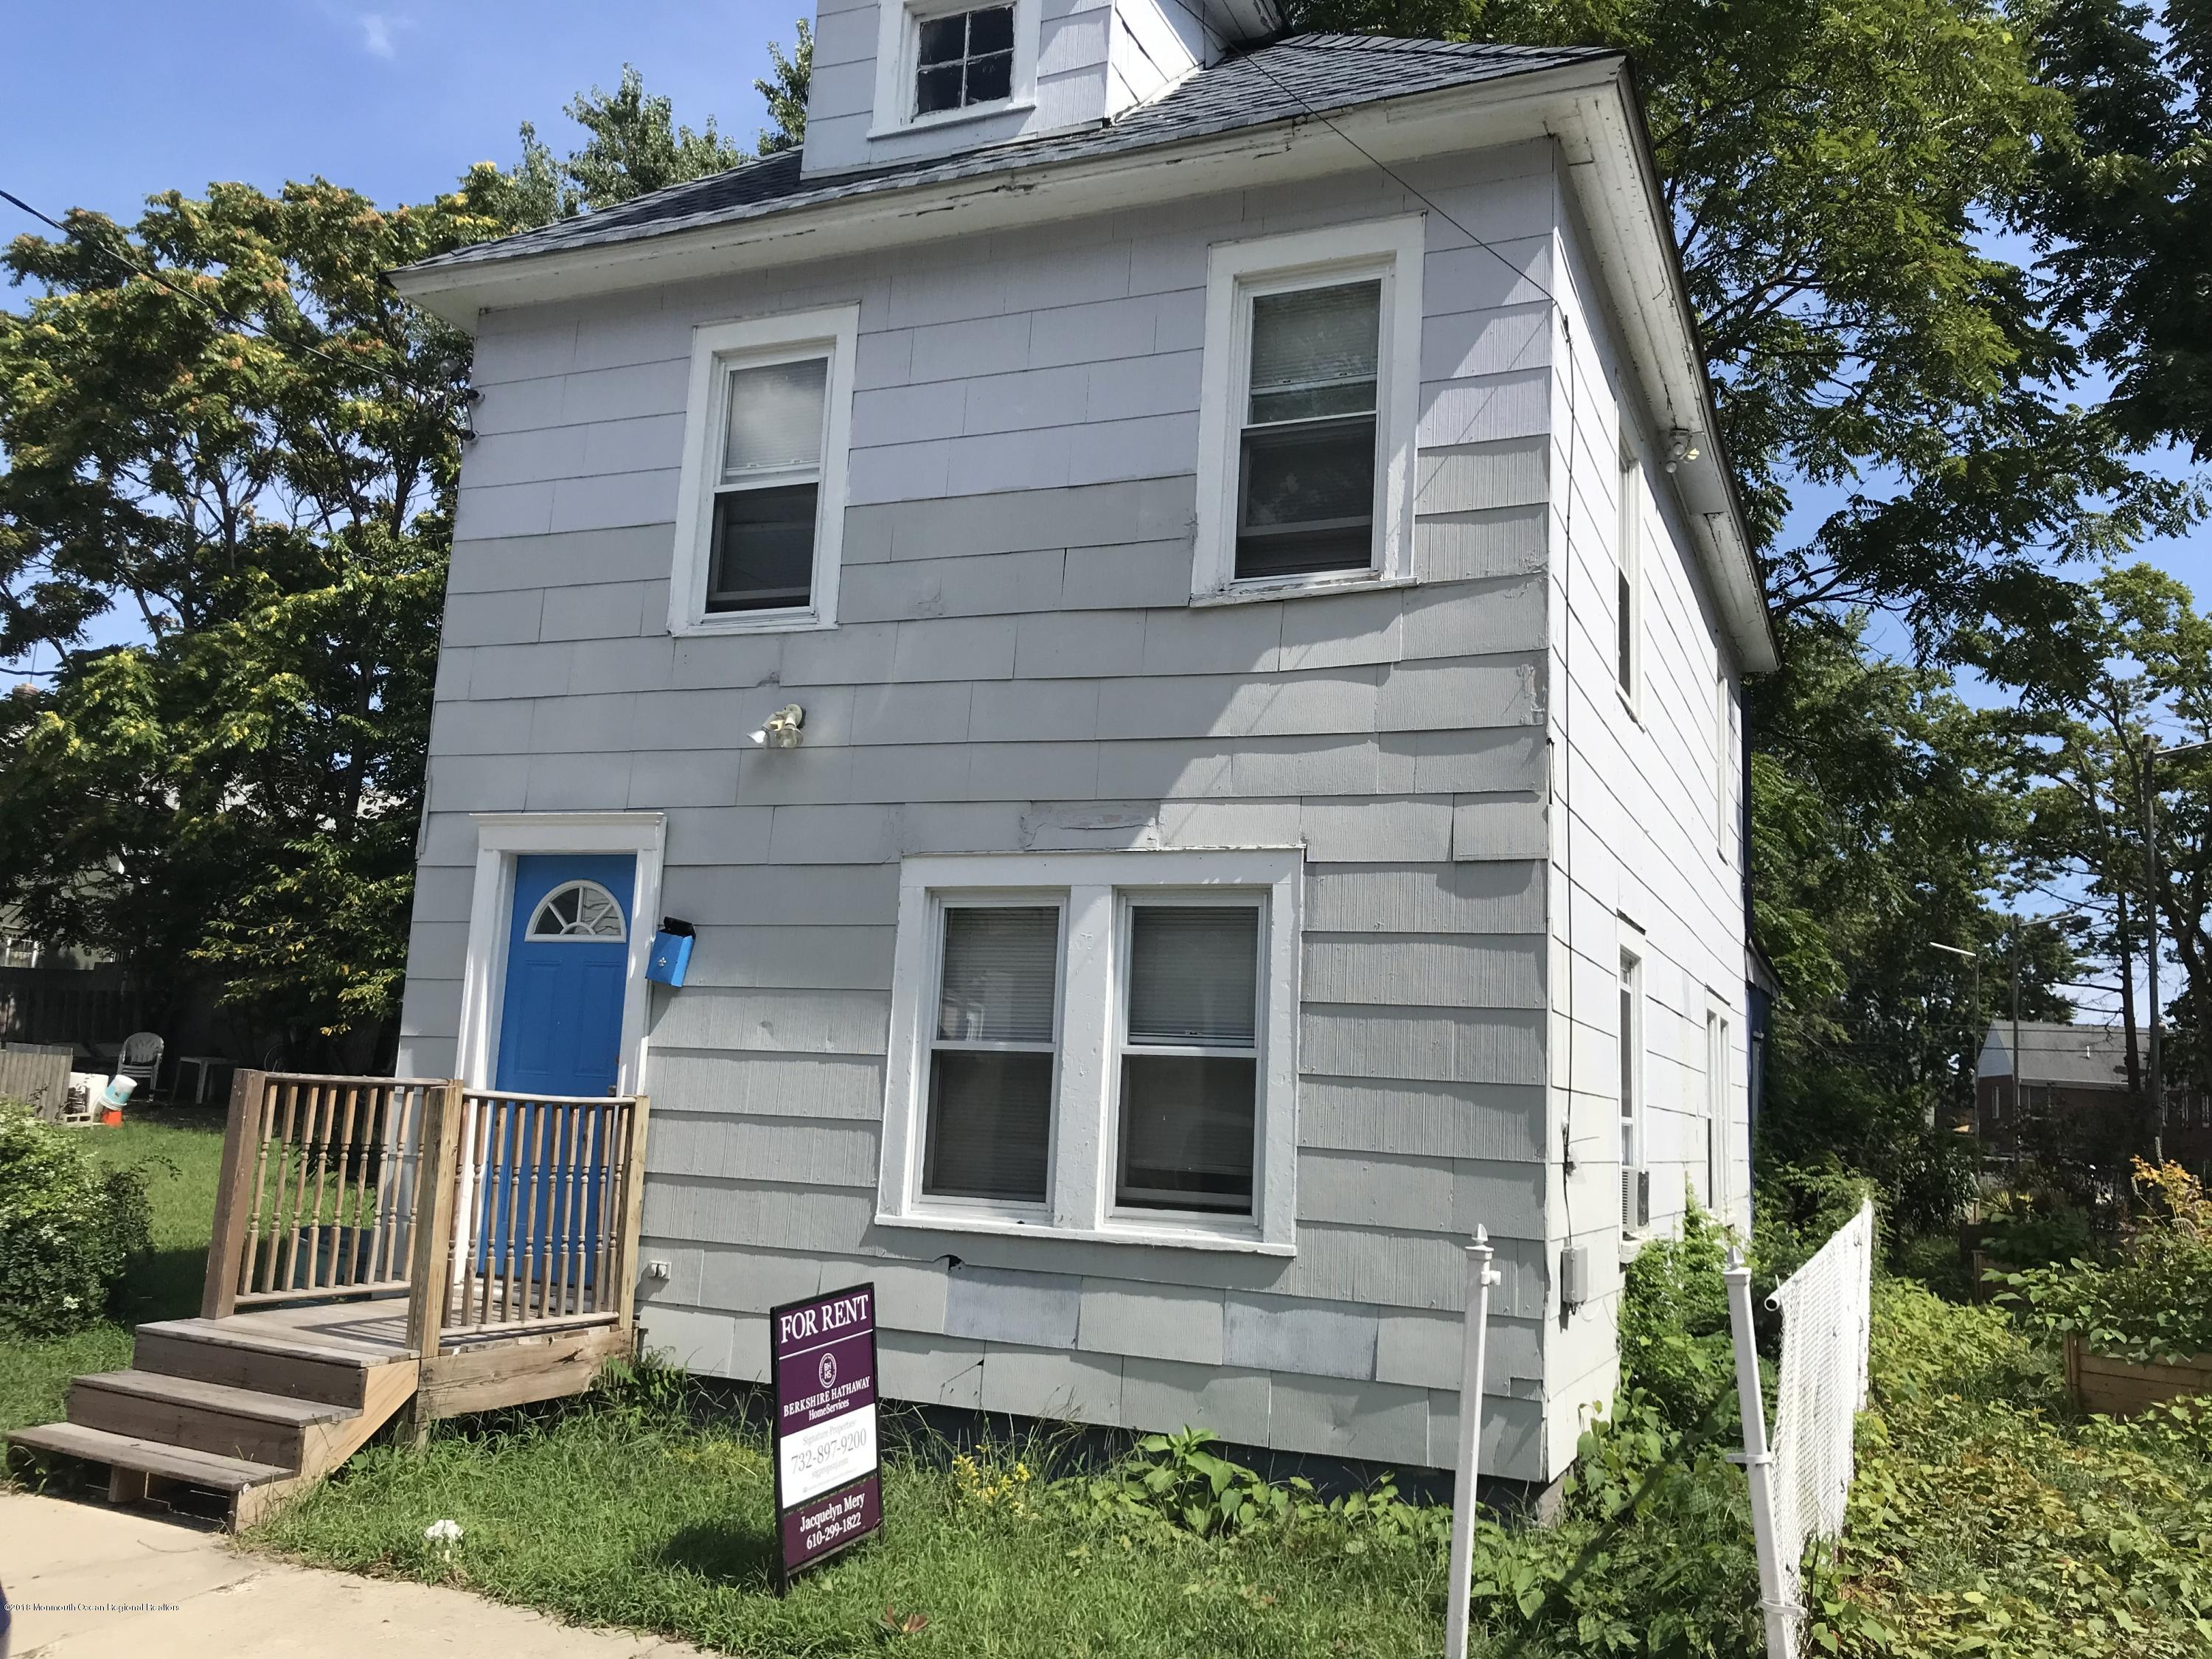 Available now....Large, newly renovated home located at the end of a quiet street in the hot city of Asbury Park! HW floors throughout, Washer/Dryer included. Next to a new walking path created by the city. Proof of income. Credit check. No smokers